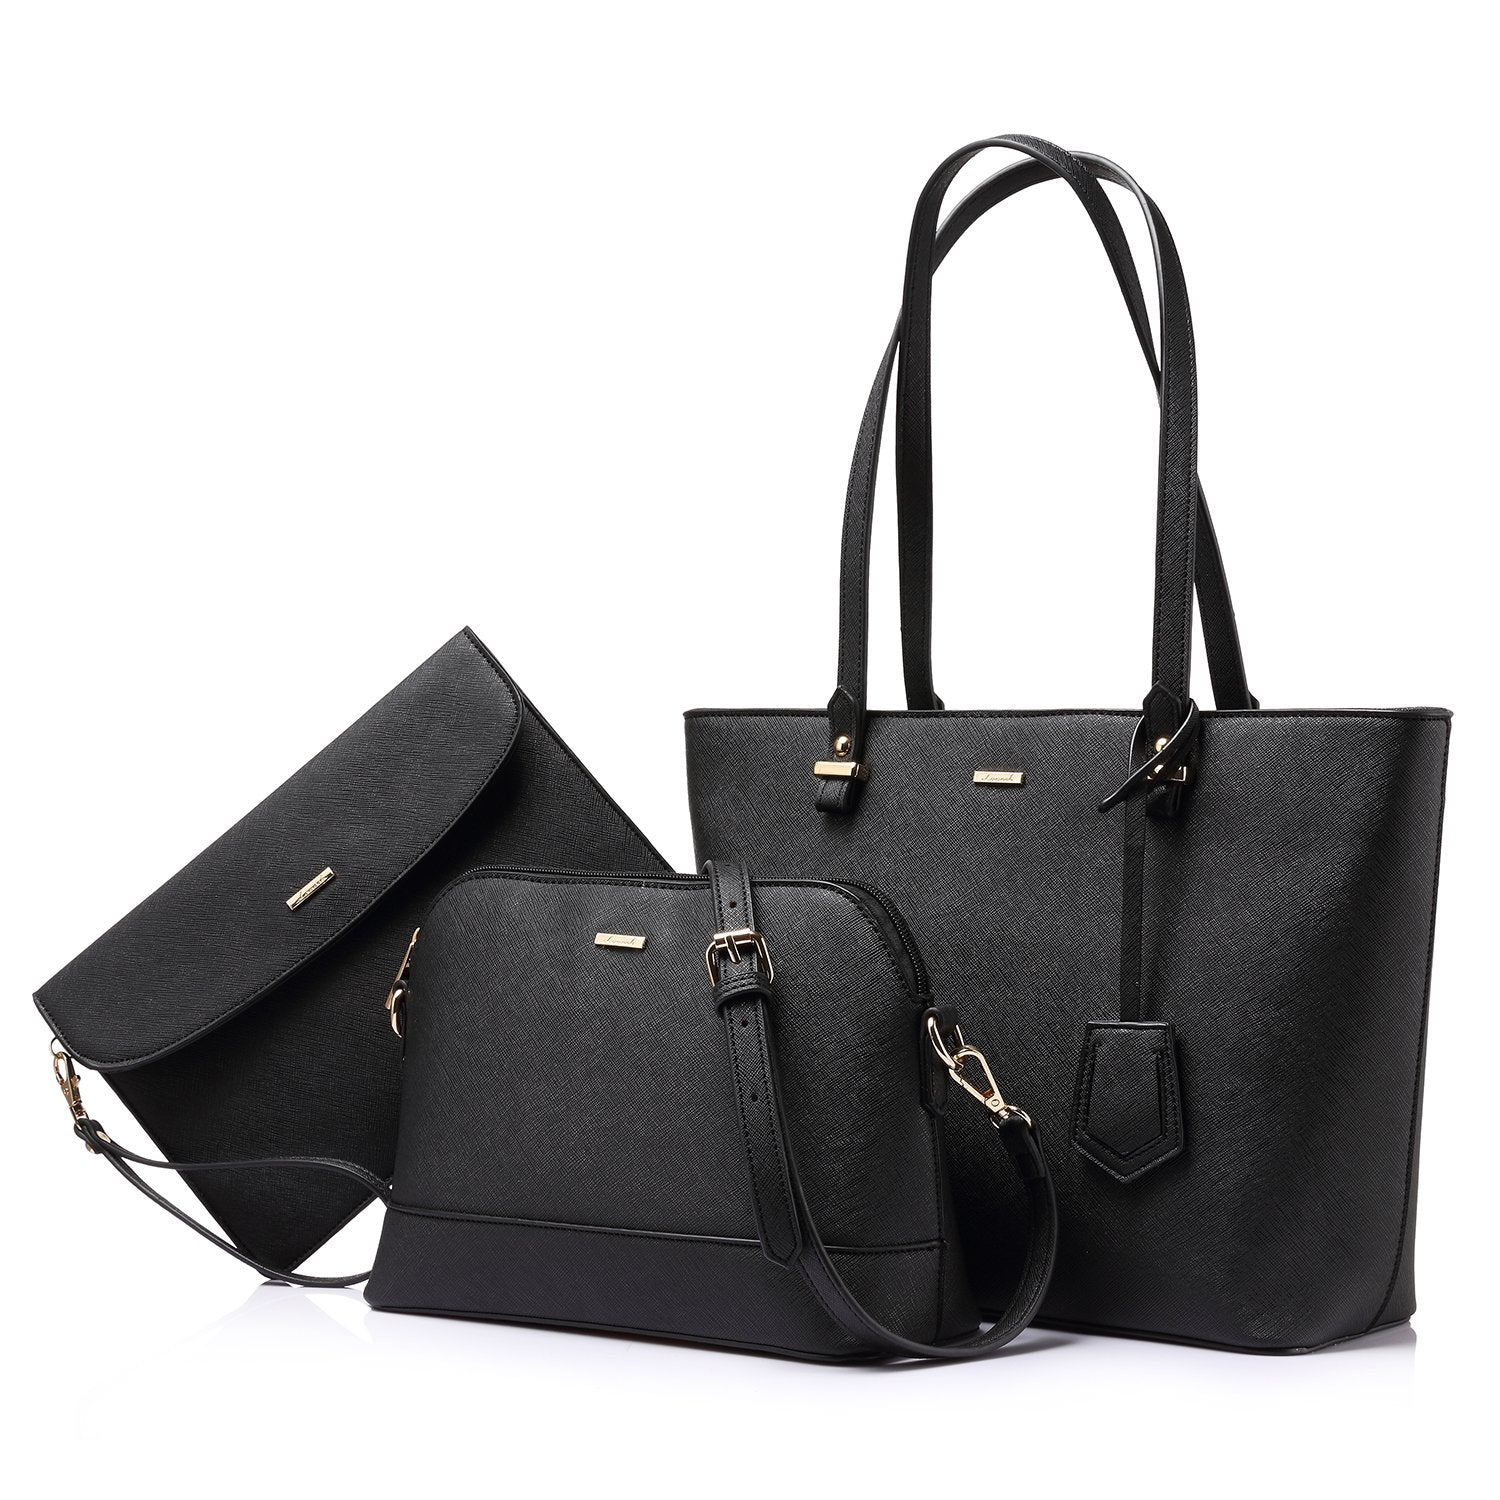 Lovevook-handbag-composite-bag-RHNWB0976-Black-positive